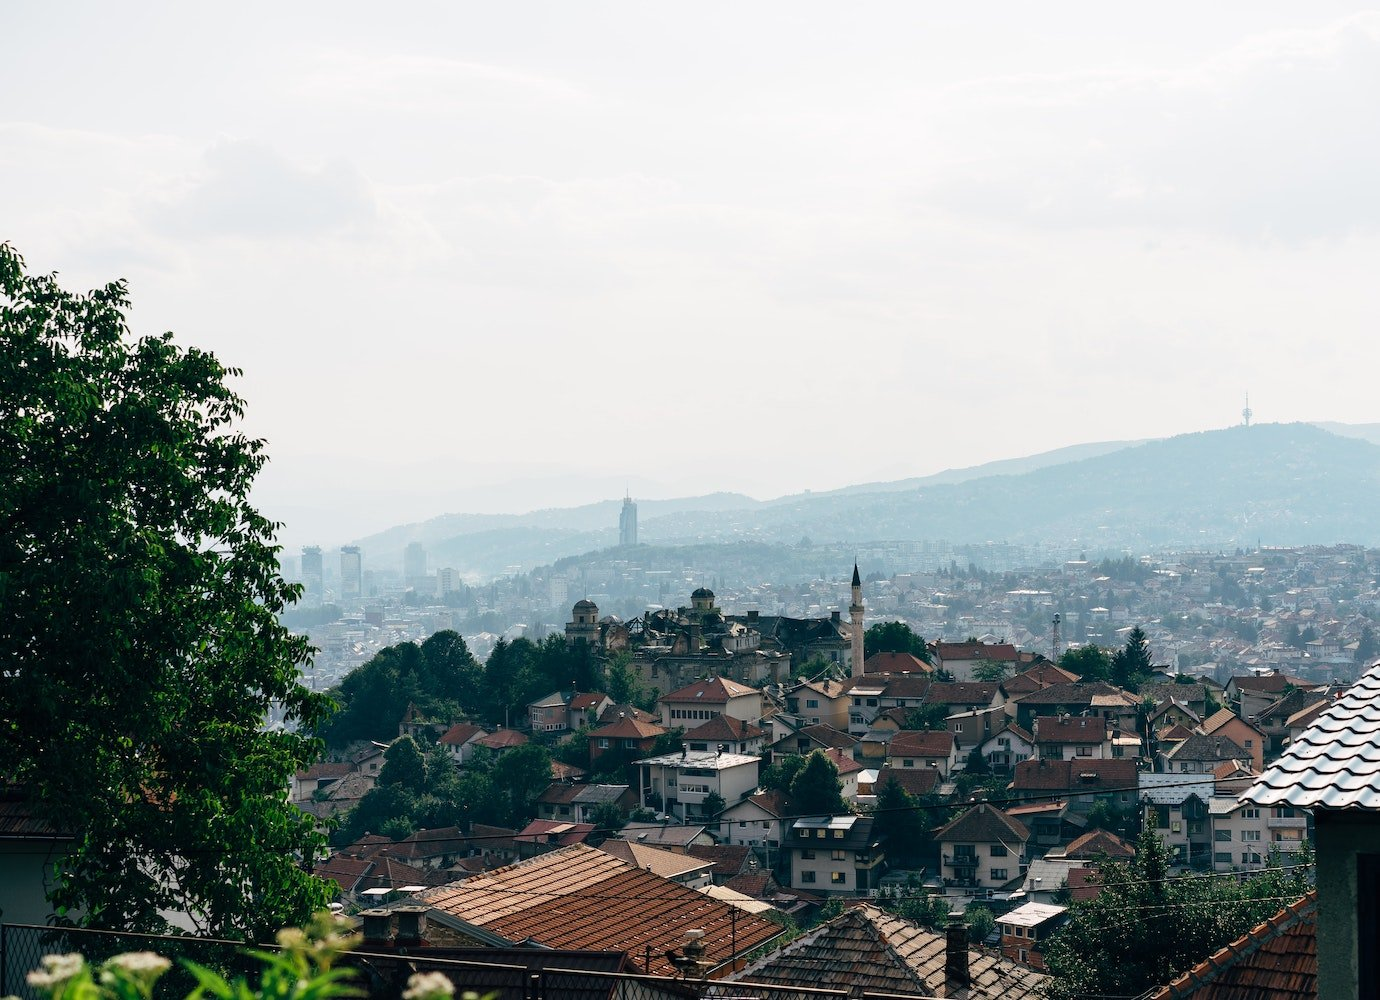 'We yearn for a world tender enough to embrace us': 4 Bosnian poems on life after war